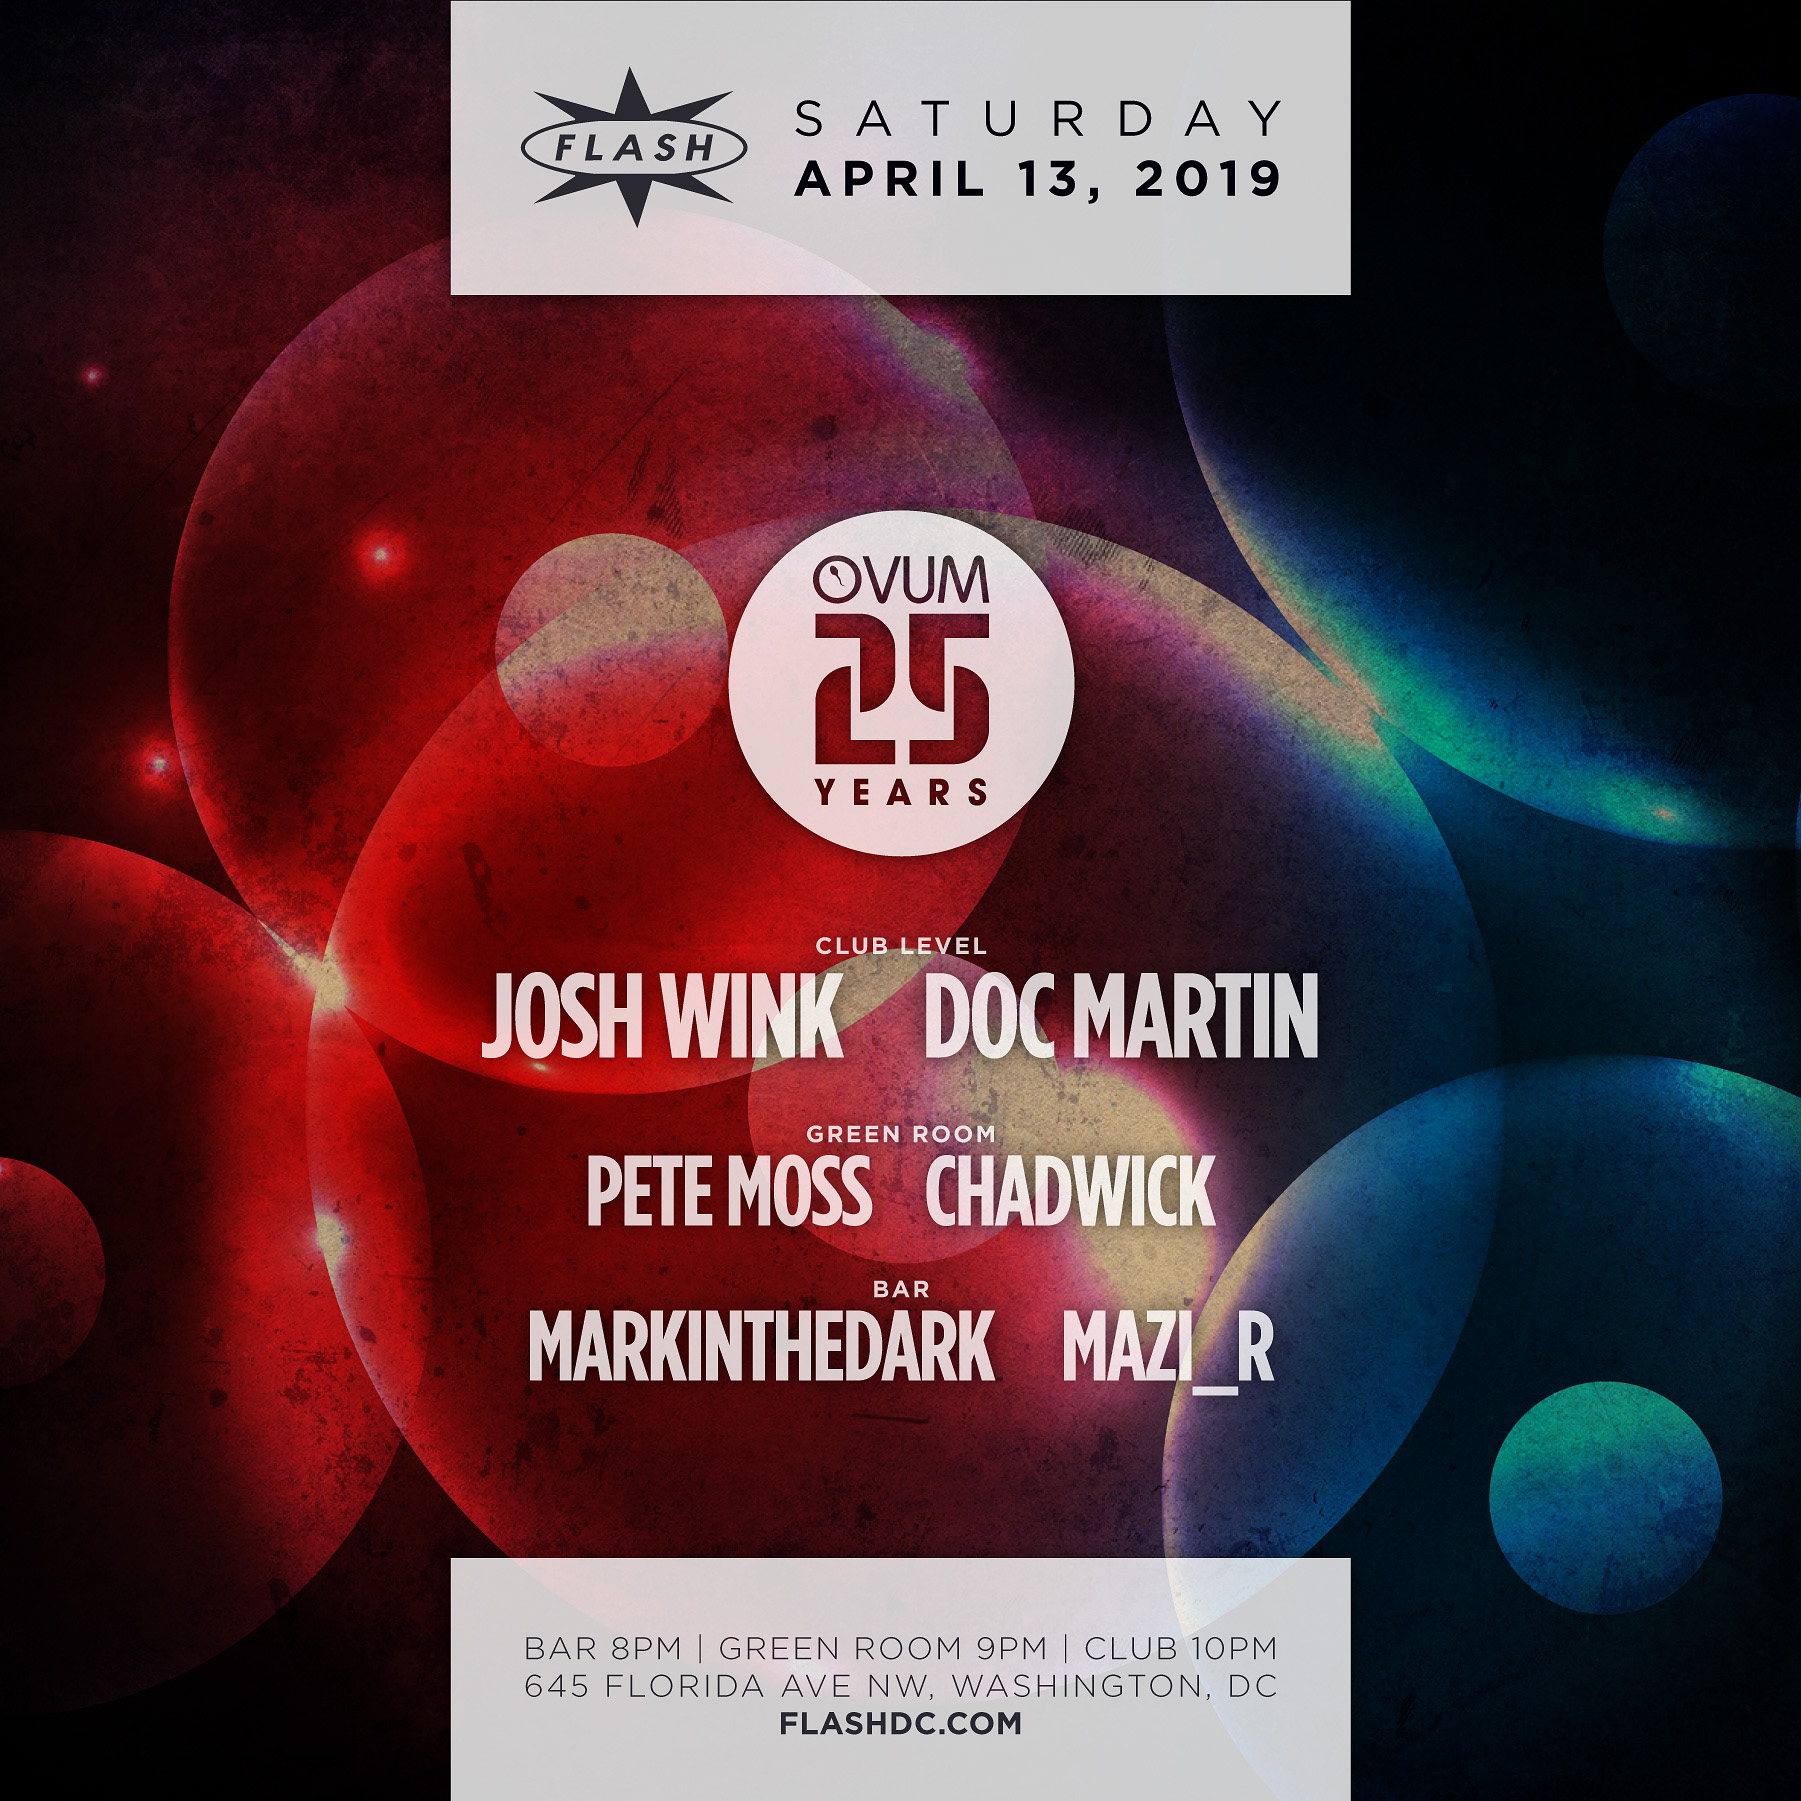 25 Years of Ovum: Josh Wink, Doc Martin, Pete Moss, Chadwick And More event thumbnail